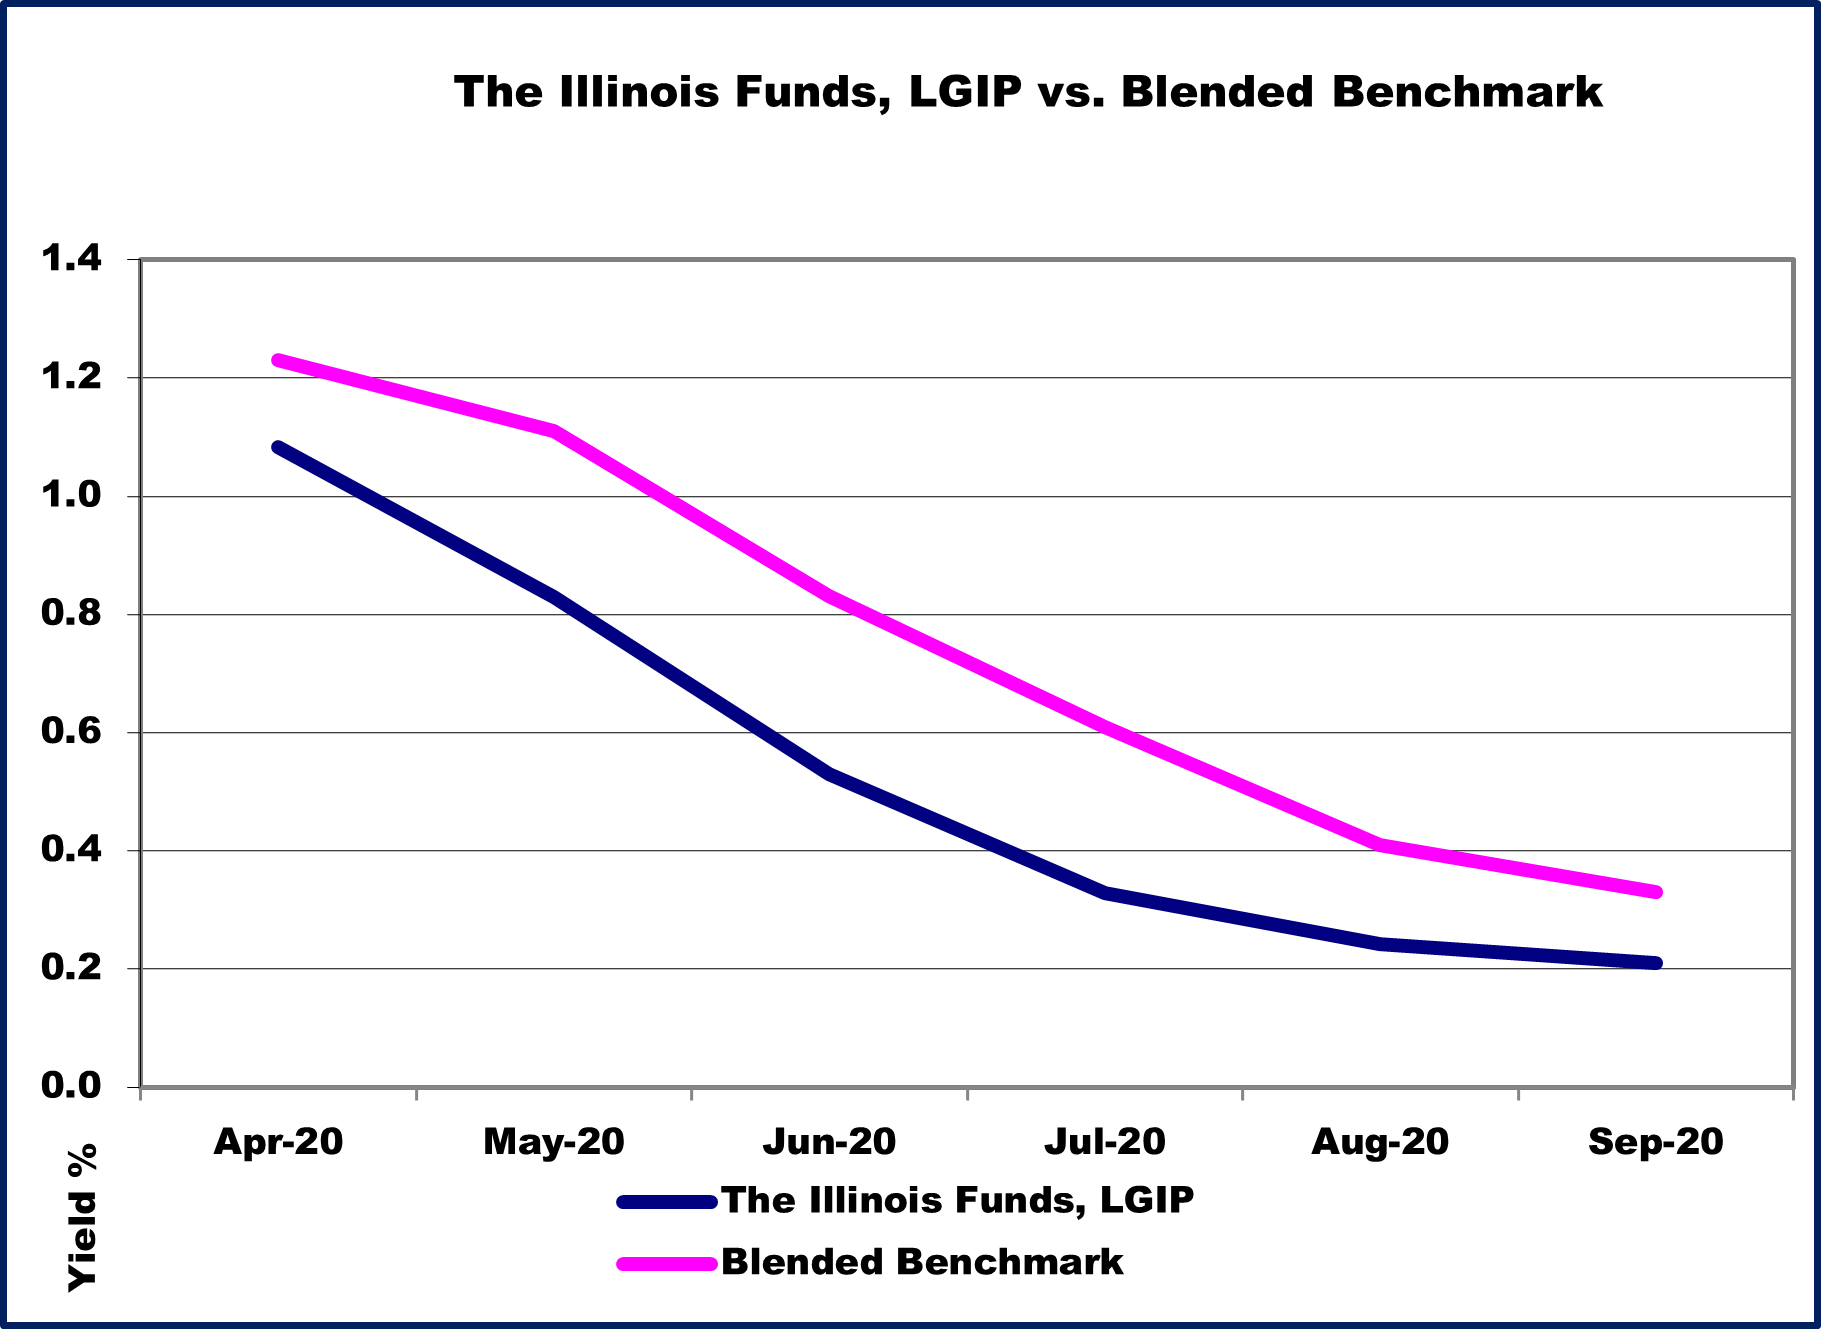 The Illinois Funds, LGIP vs. Blended Benchmark 9-30-2020